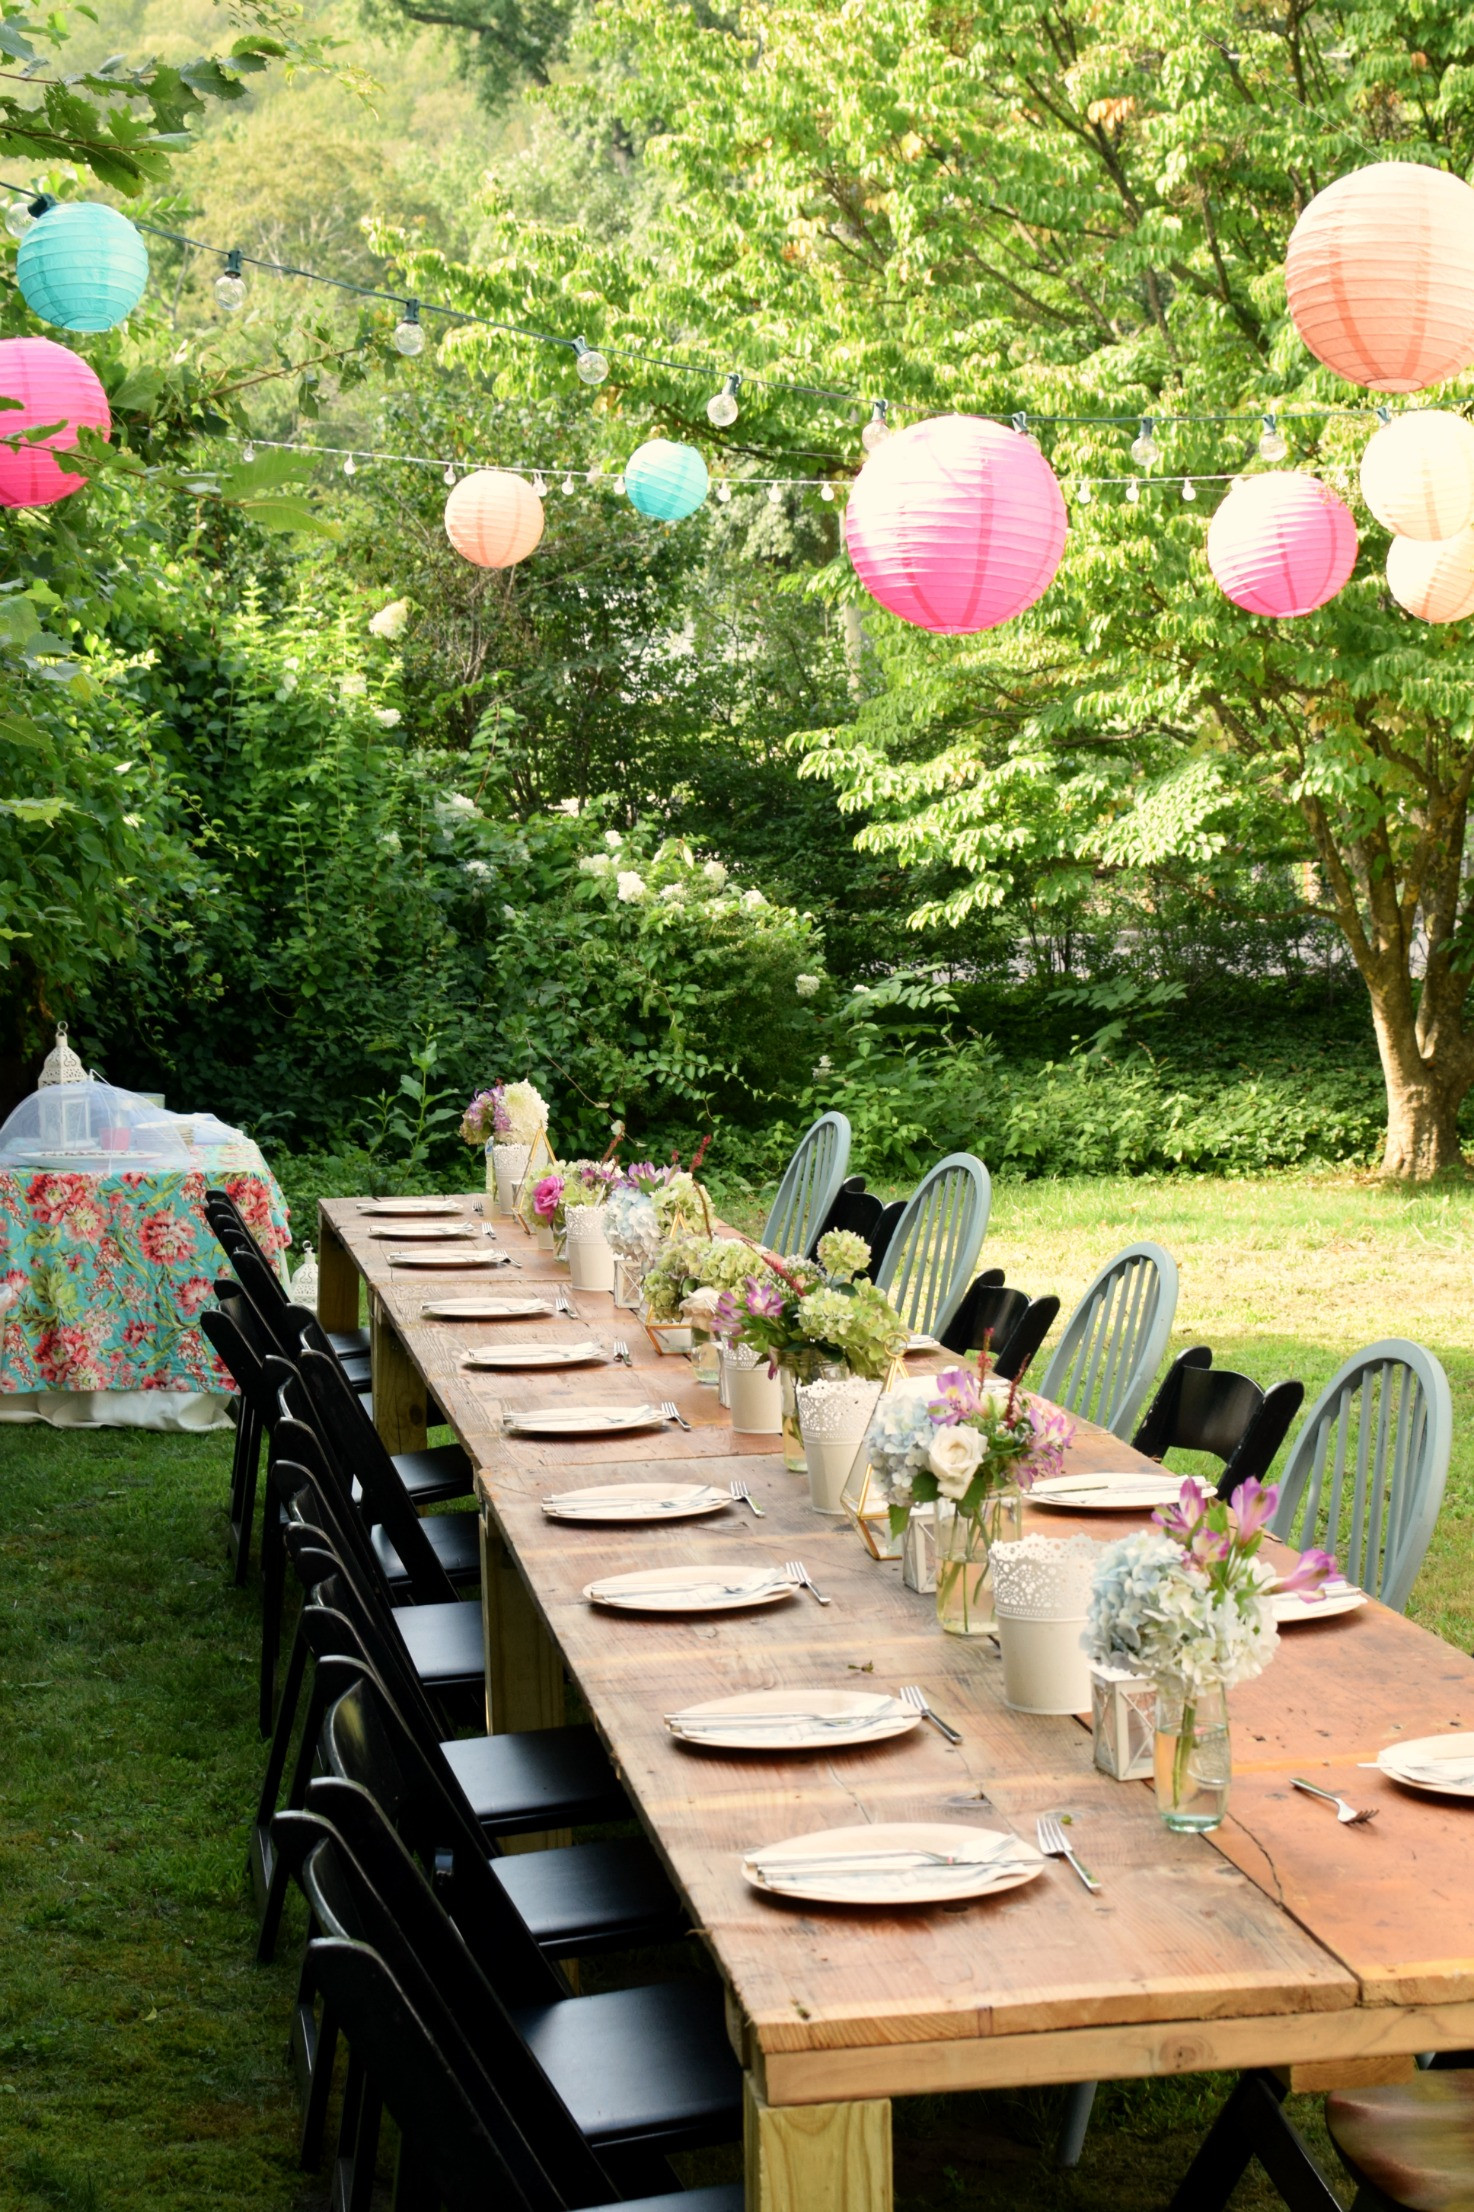 Best ideas about Garden Birthday Party . Save or Pin Charming Garden Party perfect for your next party idea Now.